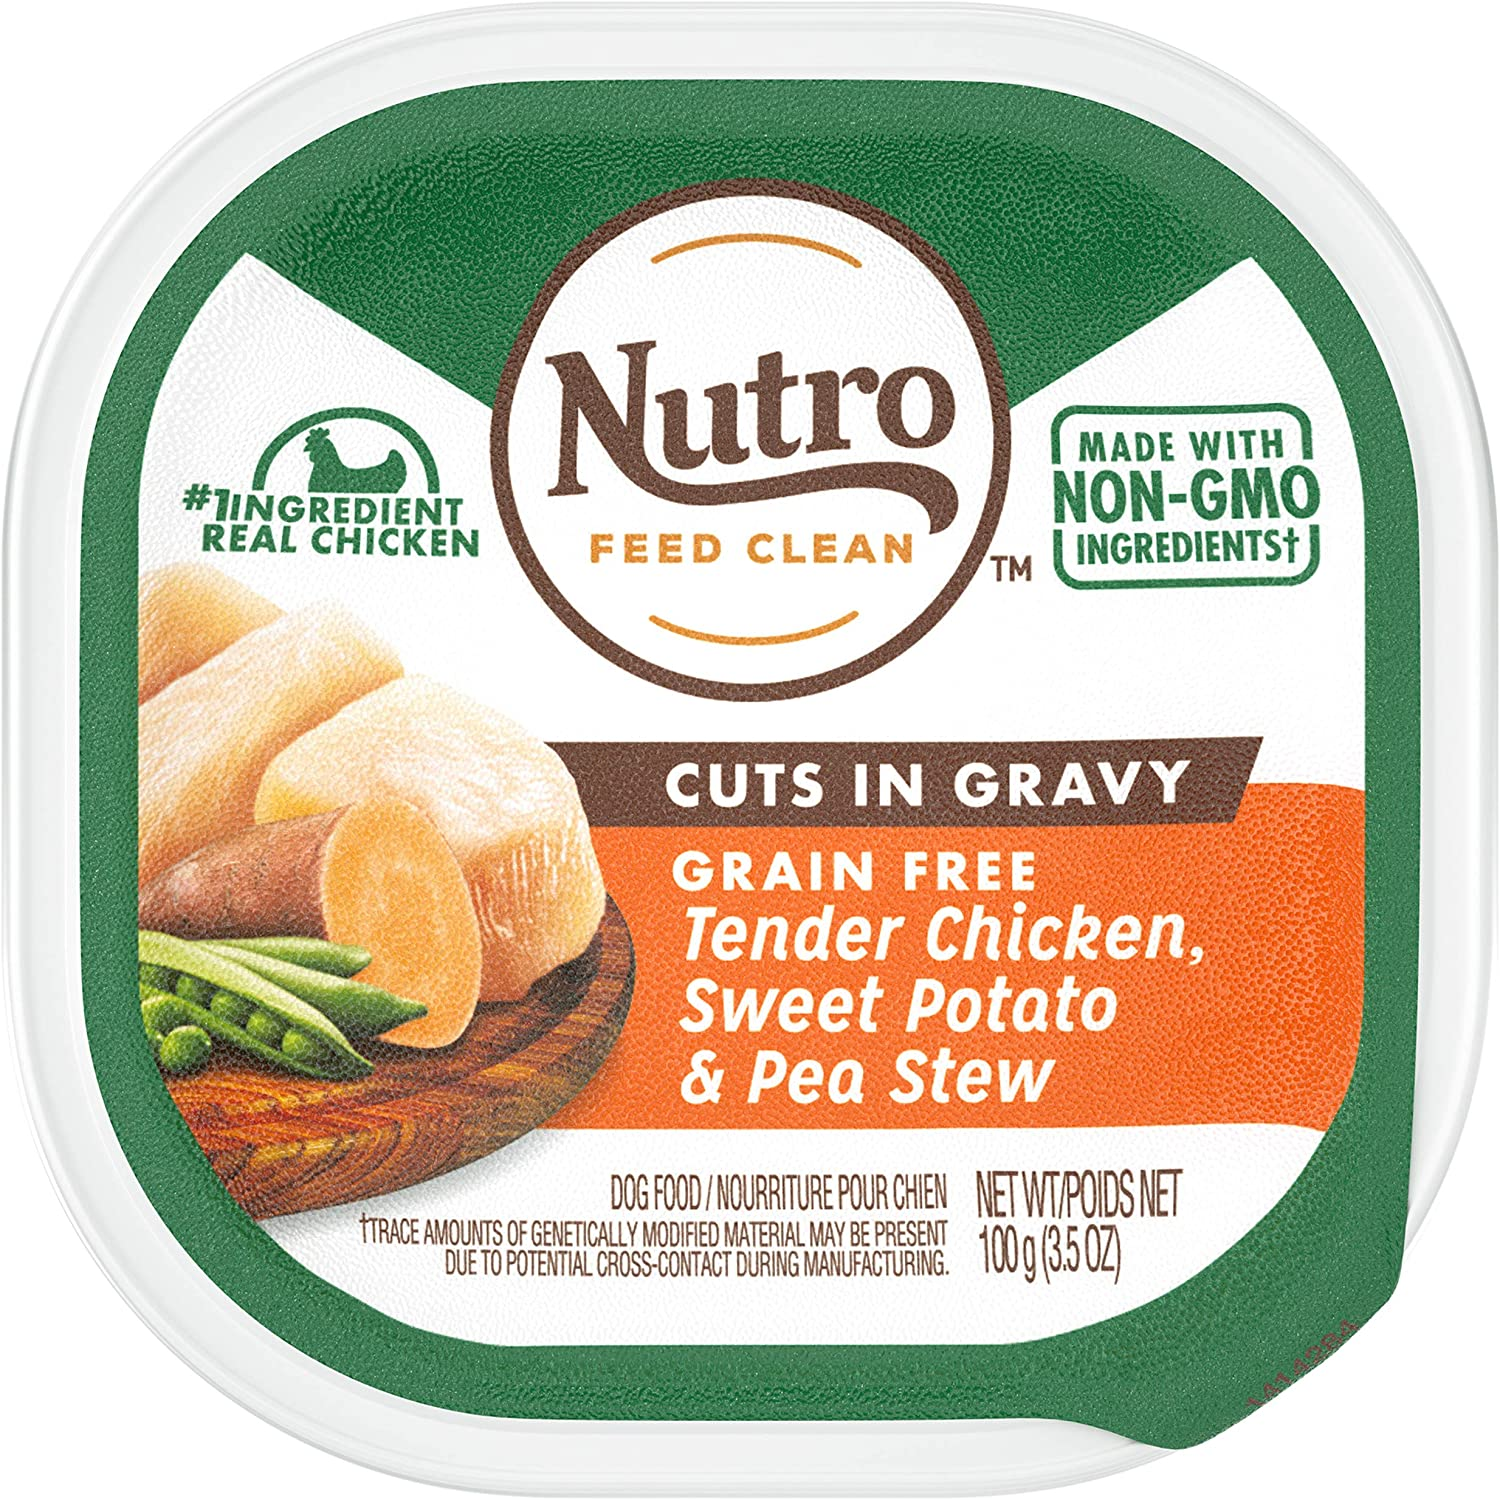 Nutro Cuts in Gravy Grain Free Wet Dog Food Adult & Puppy, 3.5 oz Trays, pack of 24